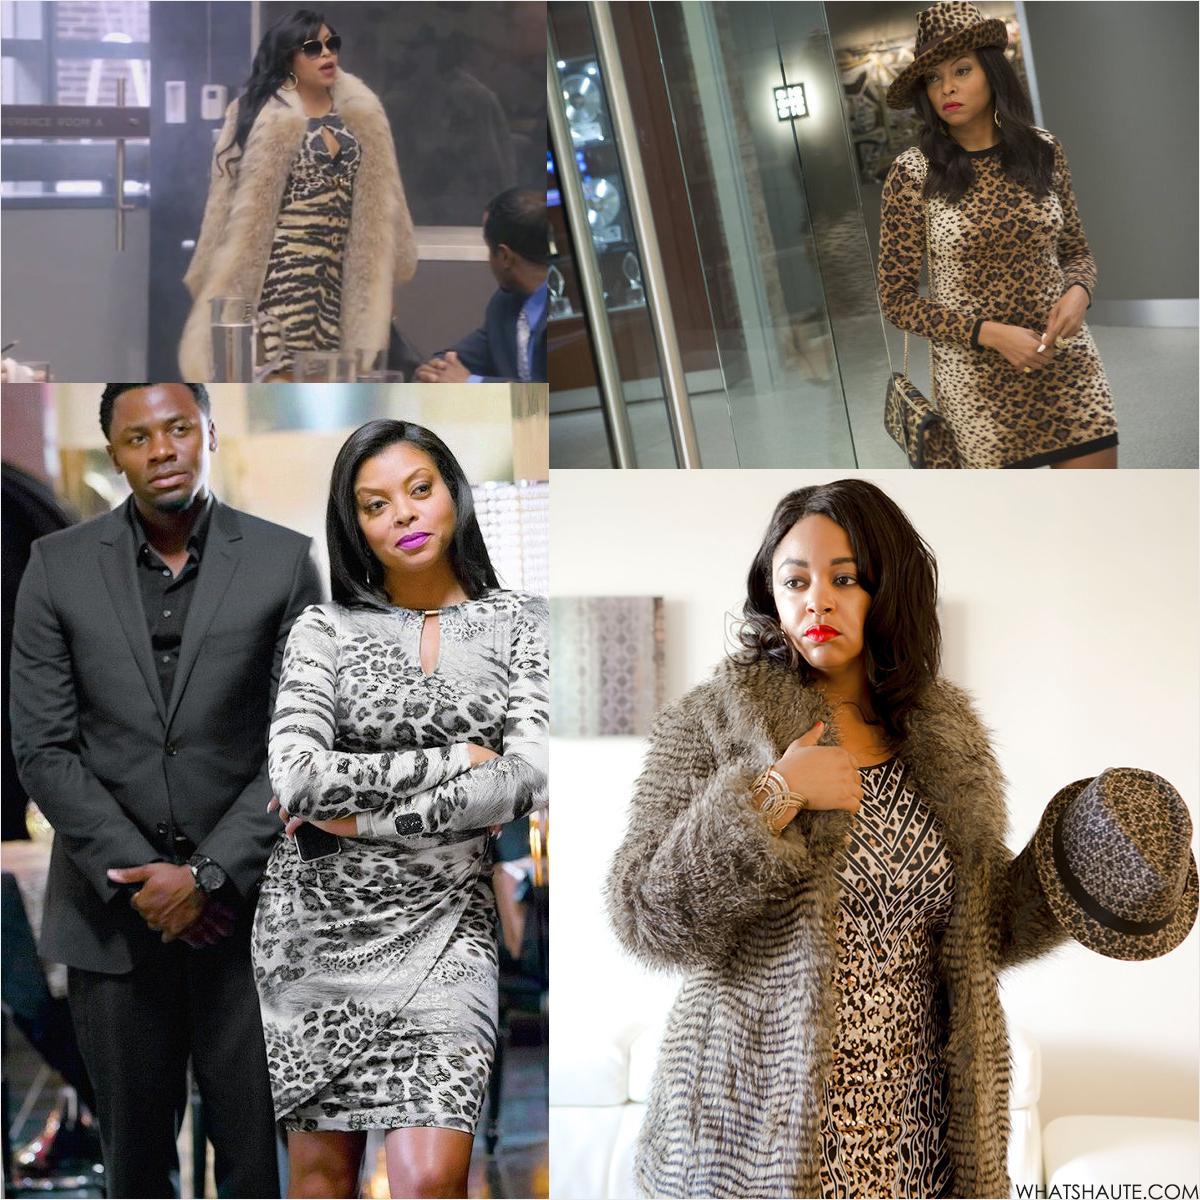 Halloween Costume Quick.Video Quick And Easy Halloween Costume Cookie Lyon From Empire